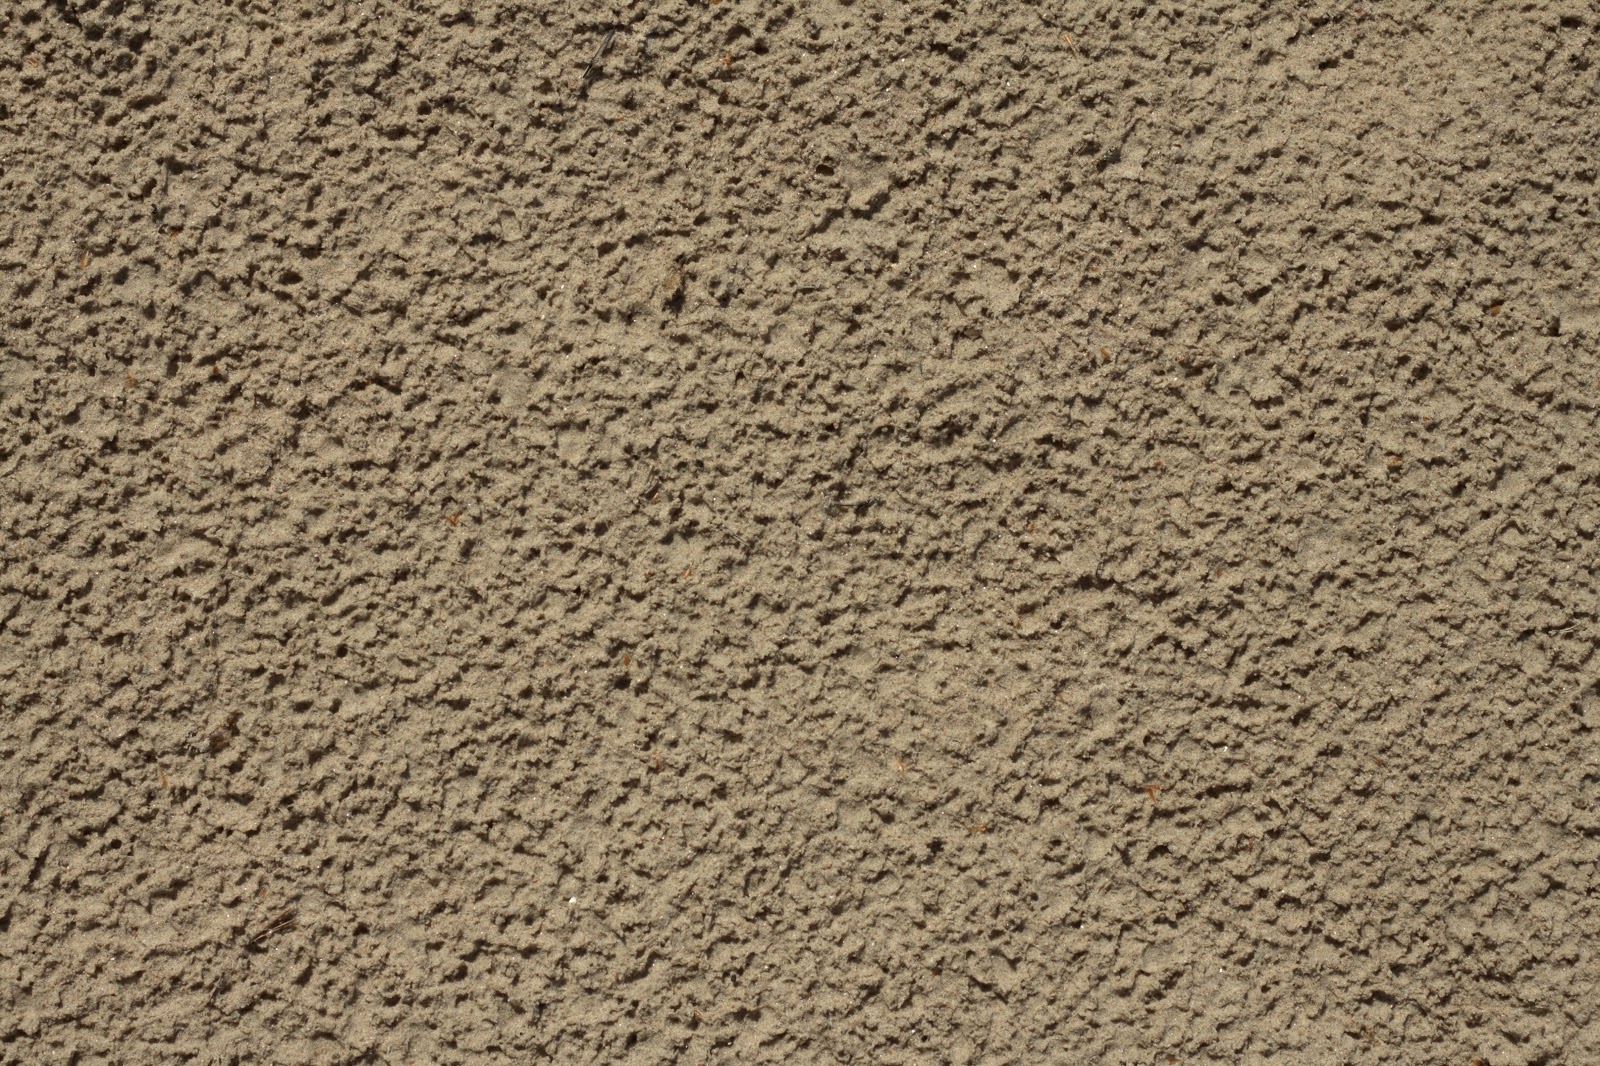 Sand beach soil ground shore desert texture ver 2